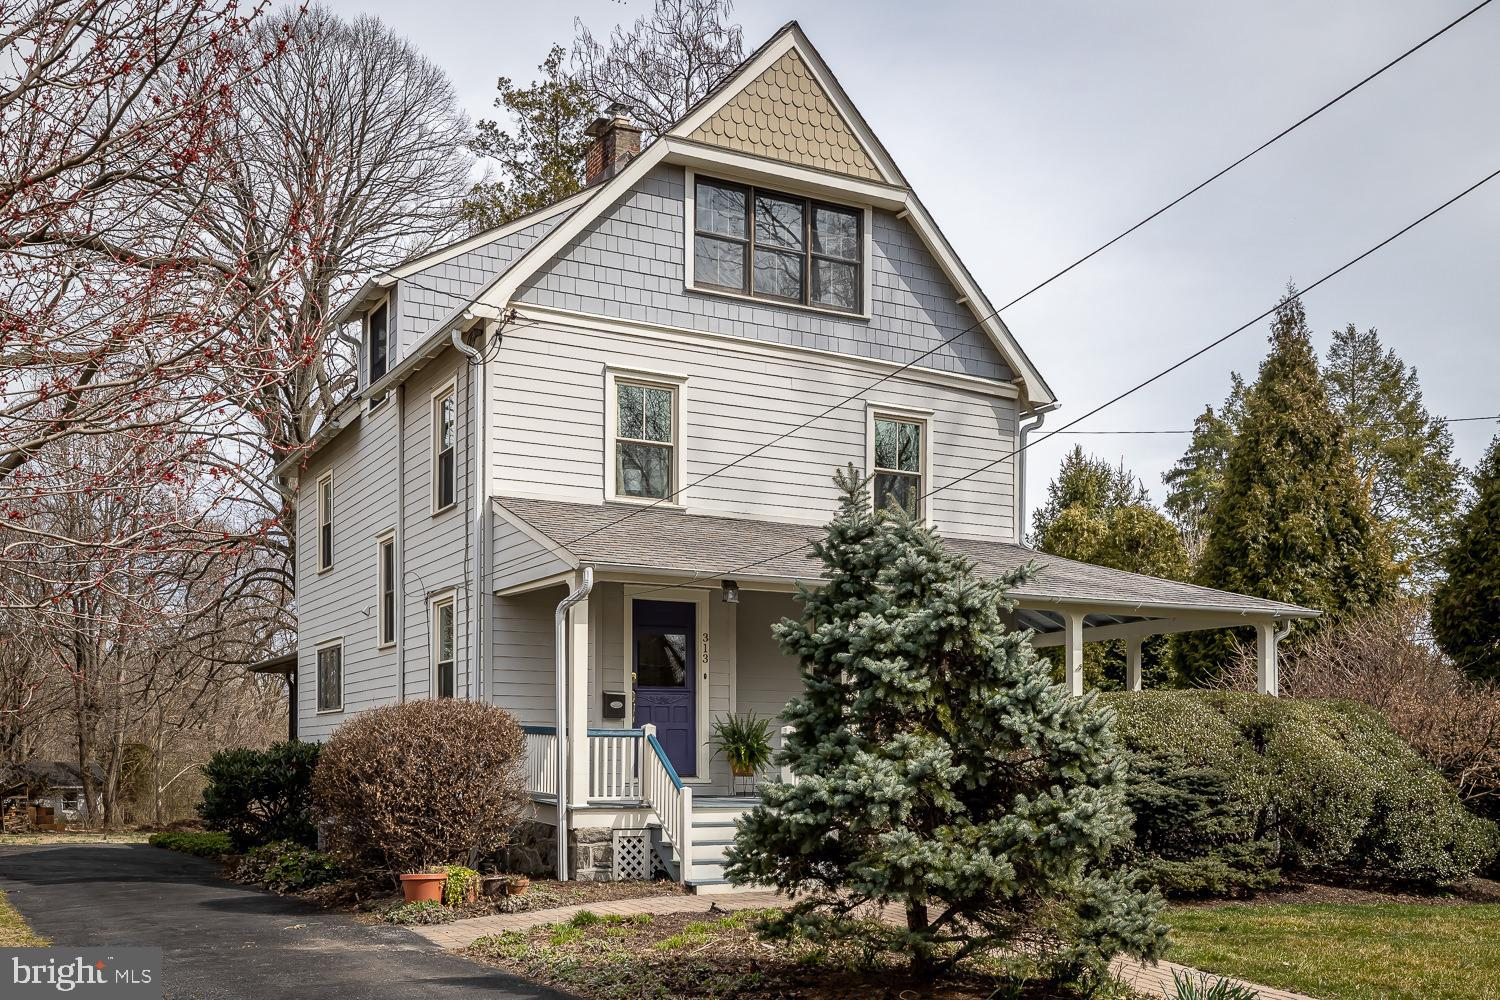 313 DICKINSON AVENUE, SWARTHMORE, PA 19081